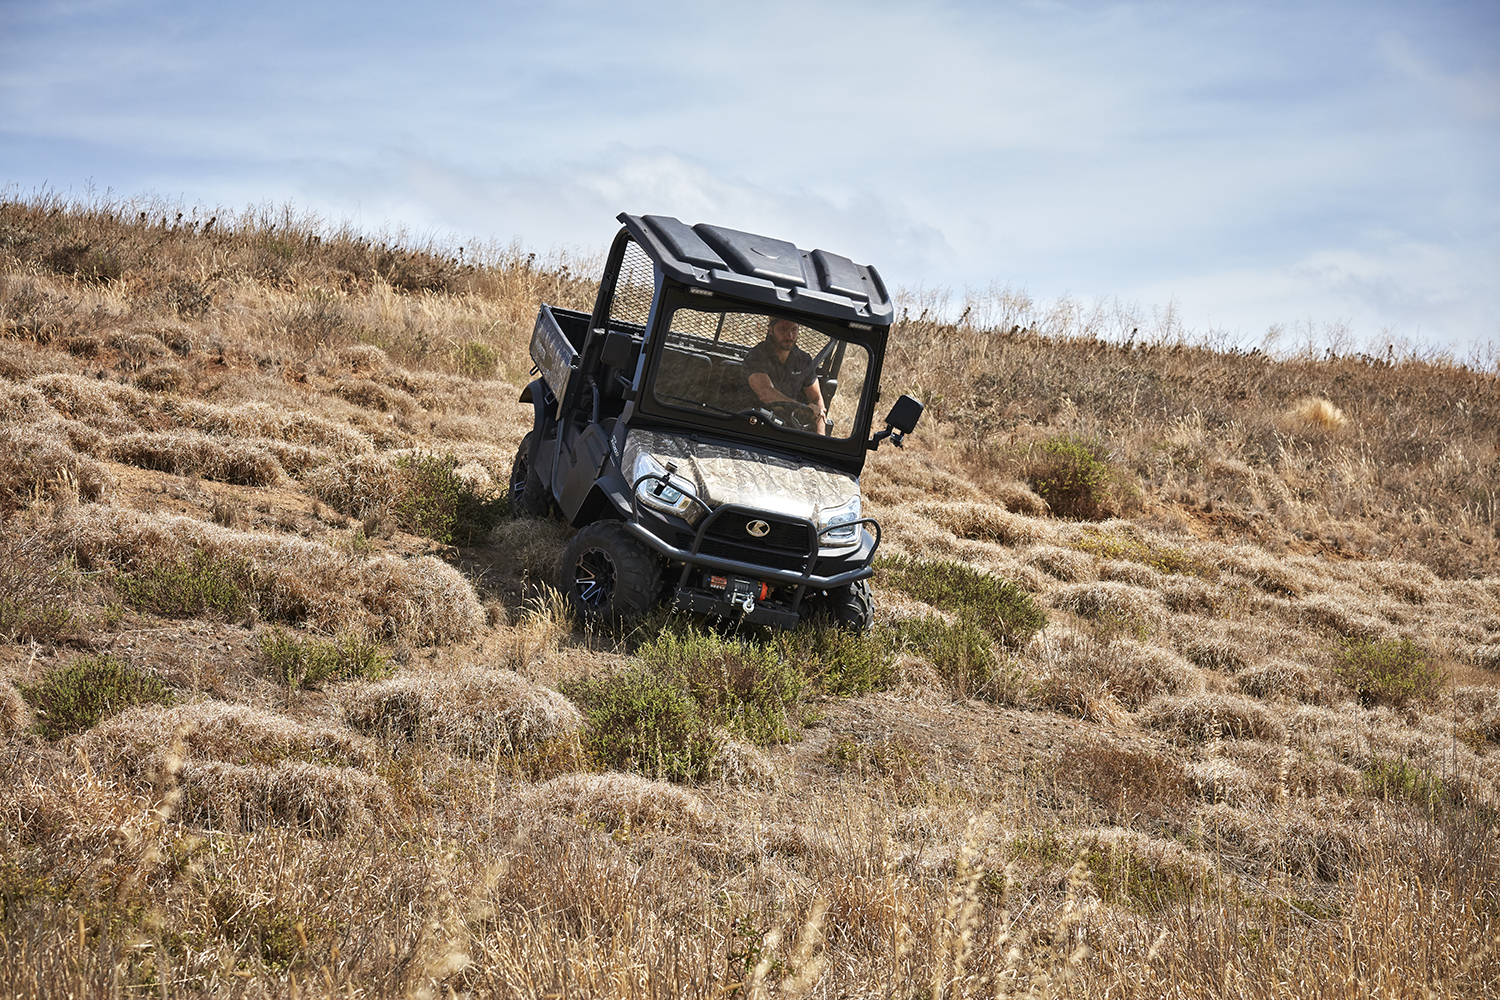 Kubota RTV camo model tough driving down hill